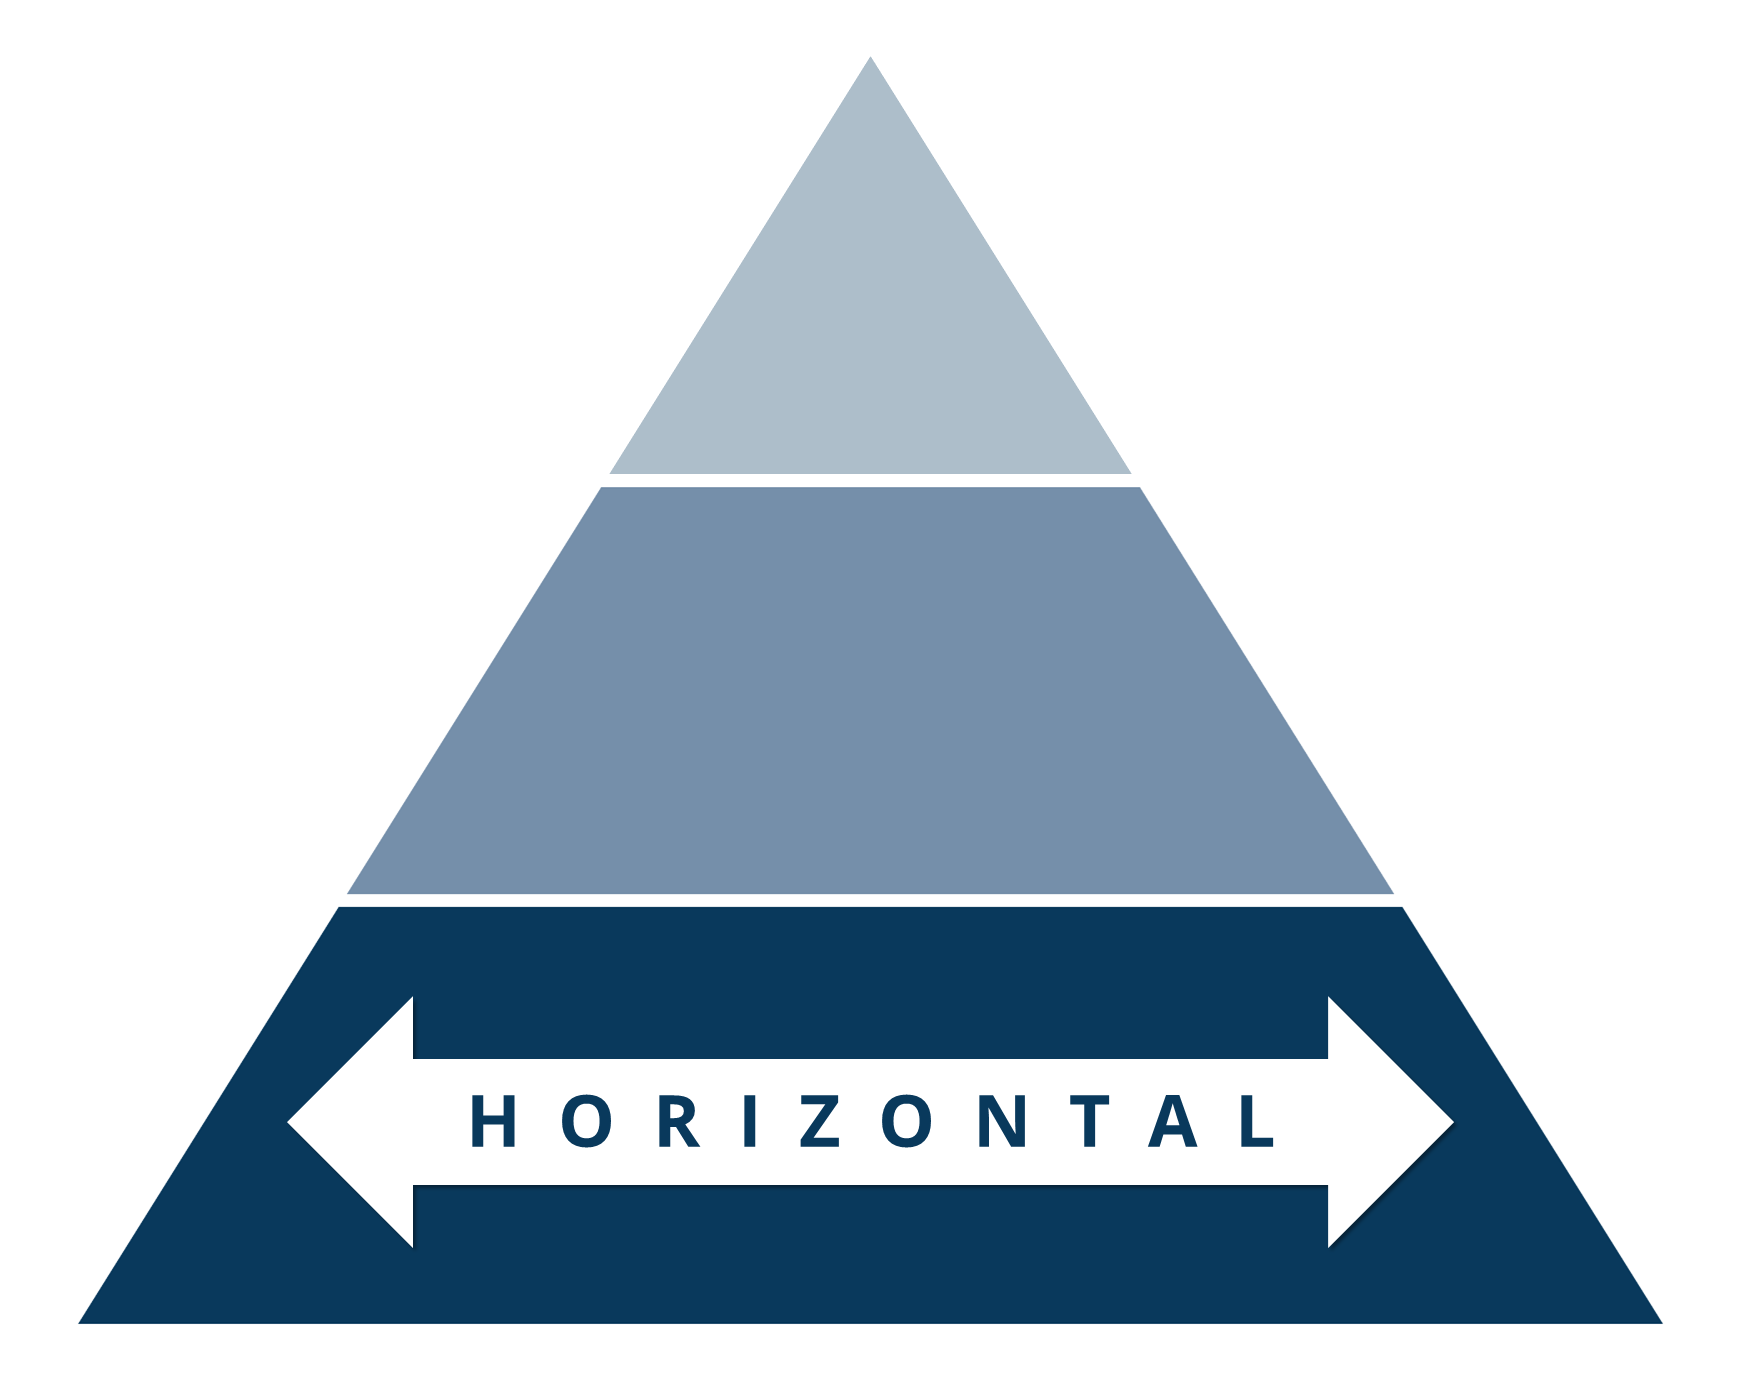 The horizontal hire